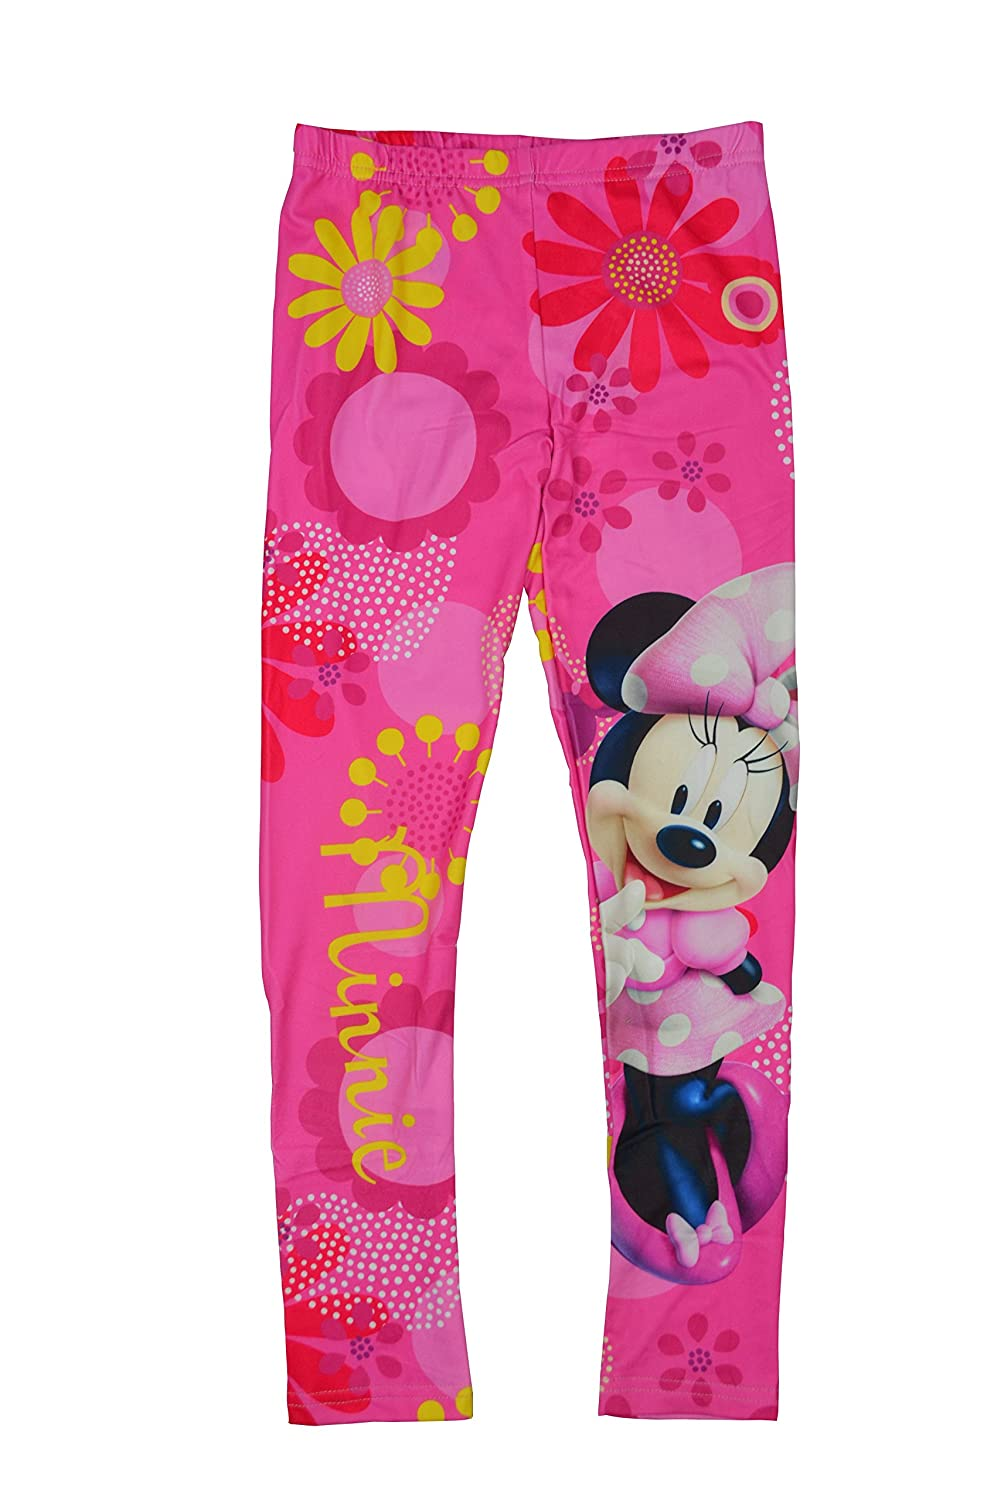 New 2018 Collection Disney Minnie Mouse Girls Shorts Spring Summer Leggings 3//4 Length 3-10 Years